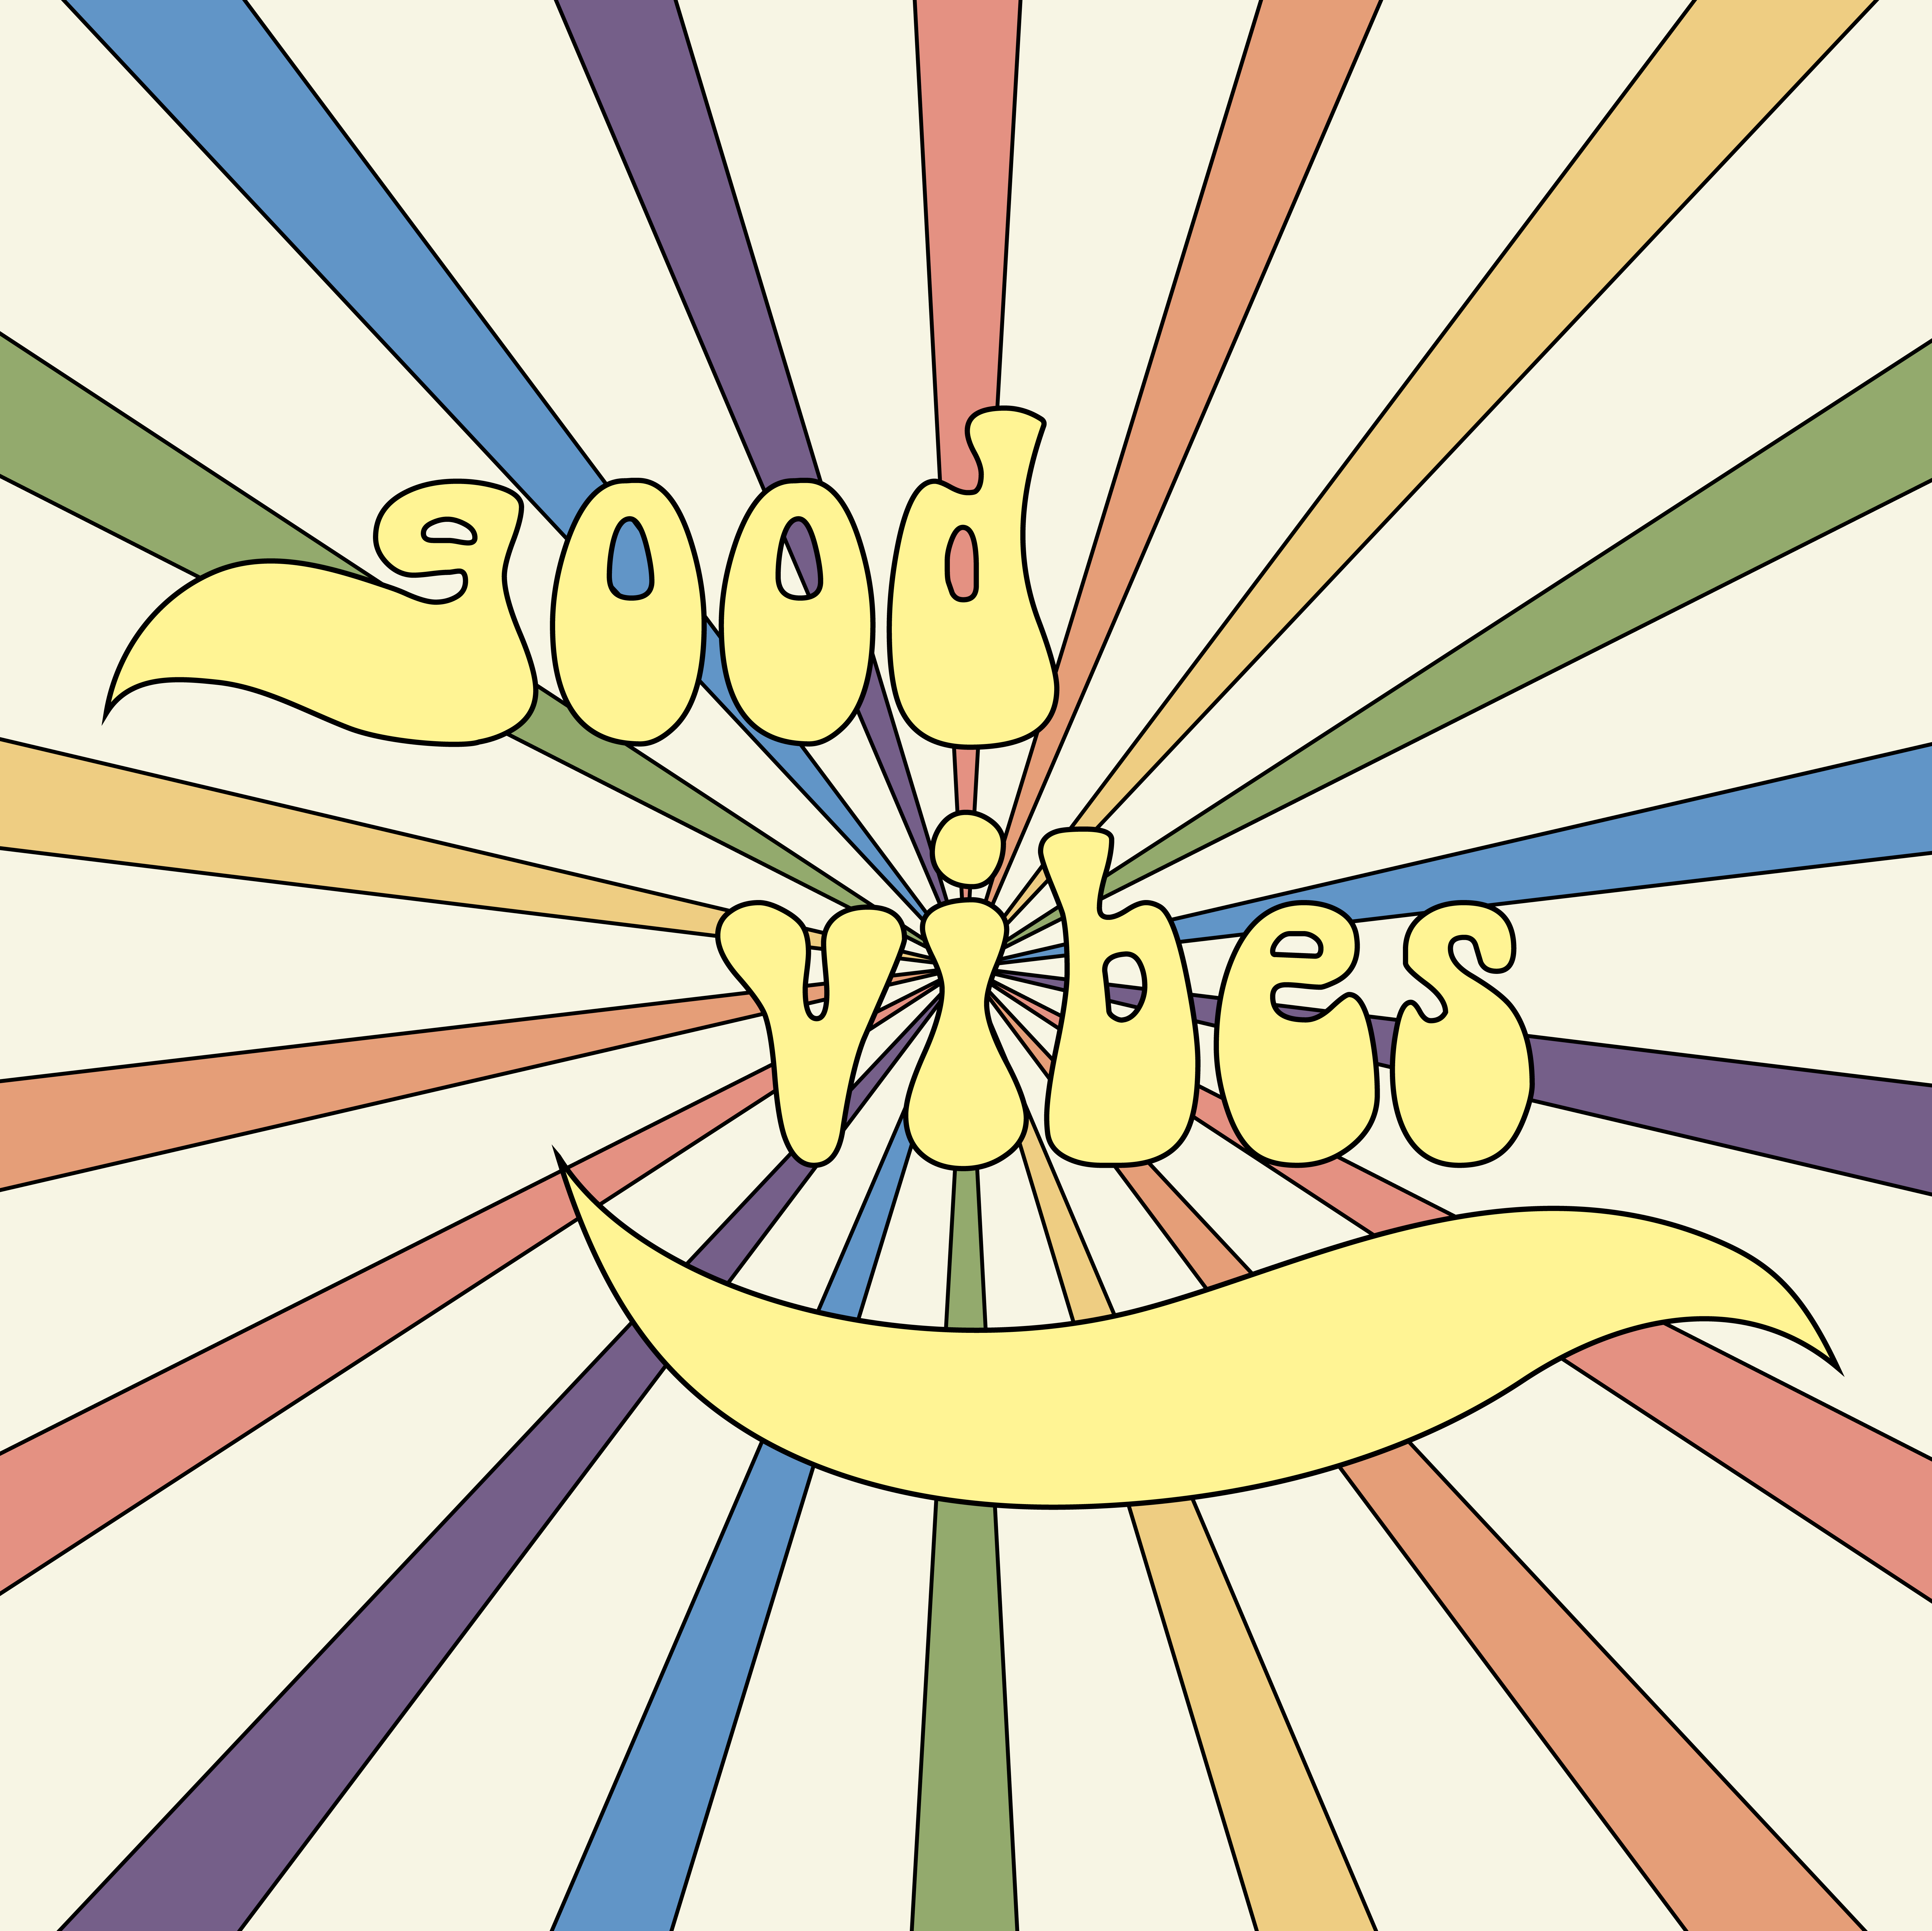 Good vibes playlist cover